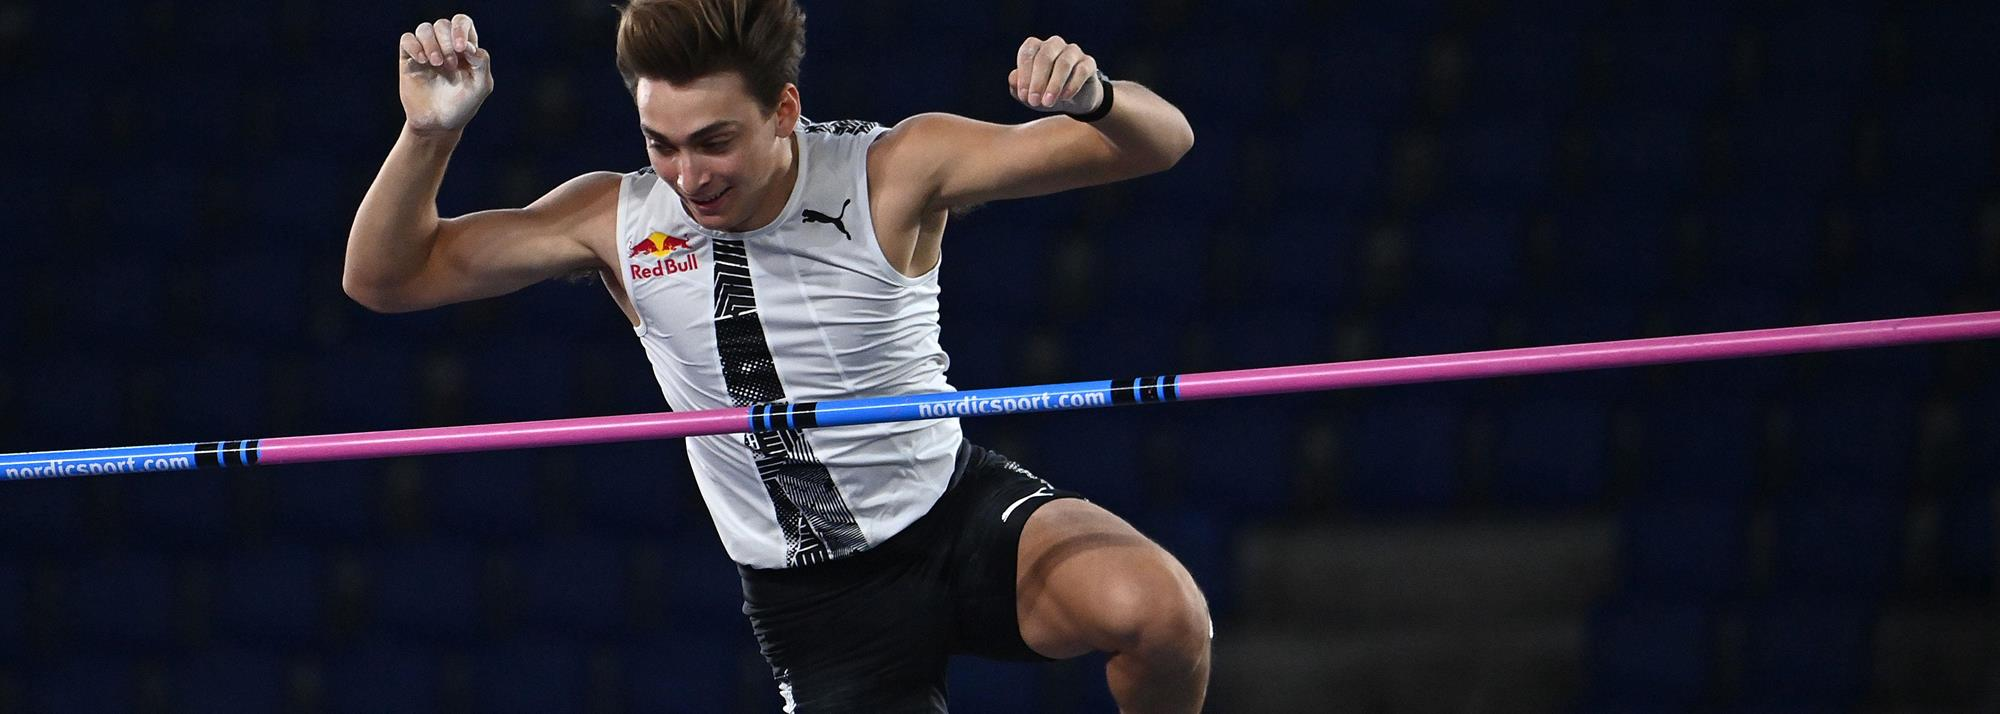 Duplantis scales 6.15m in Rome, world's highest ever outdoor vault